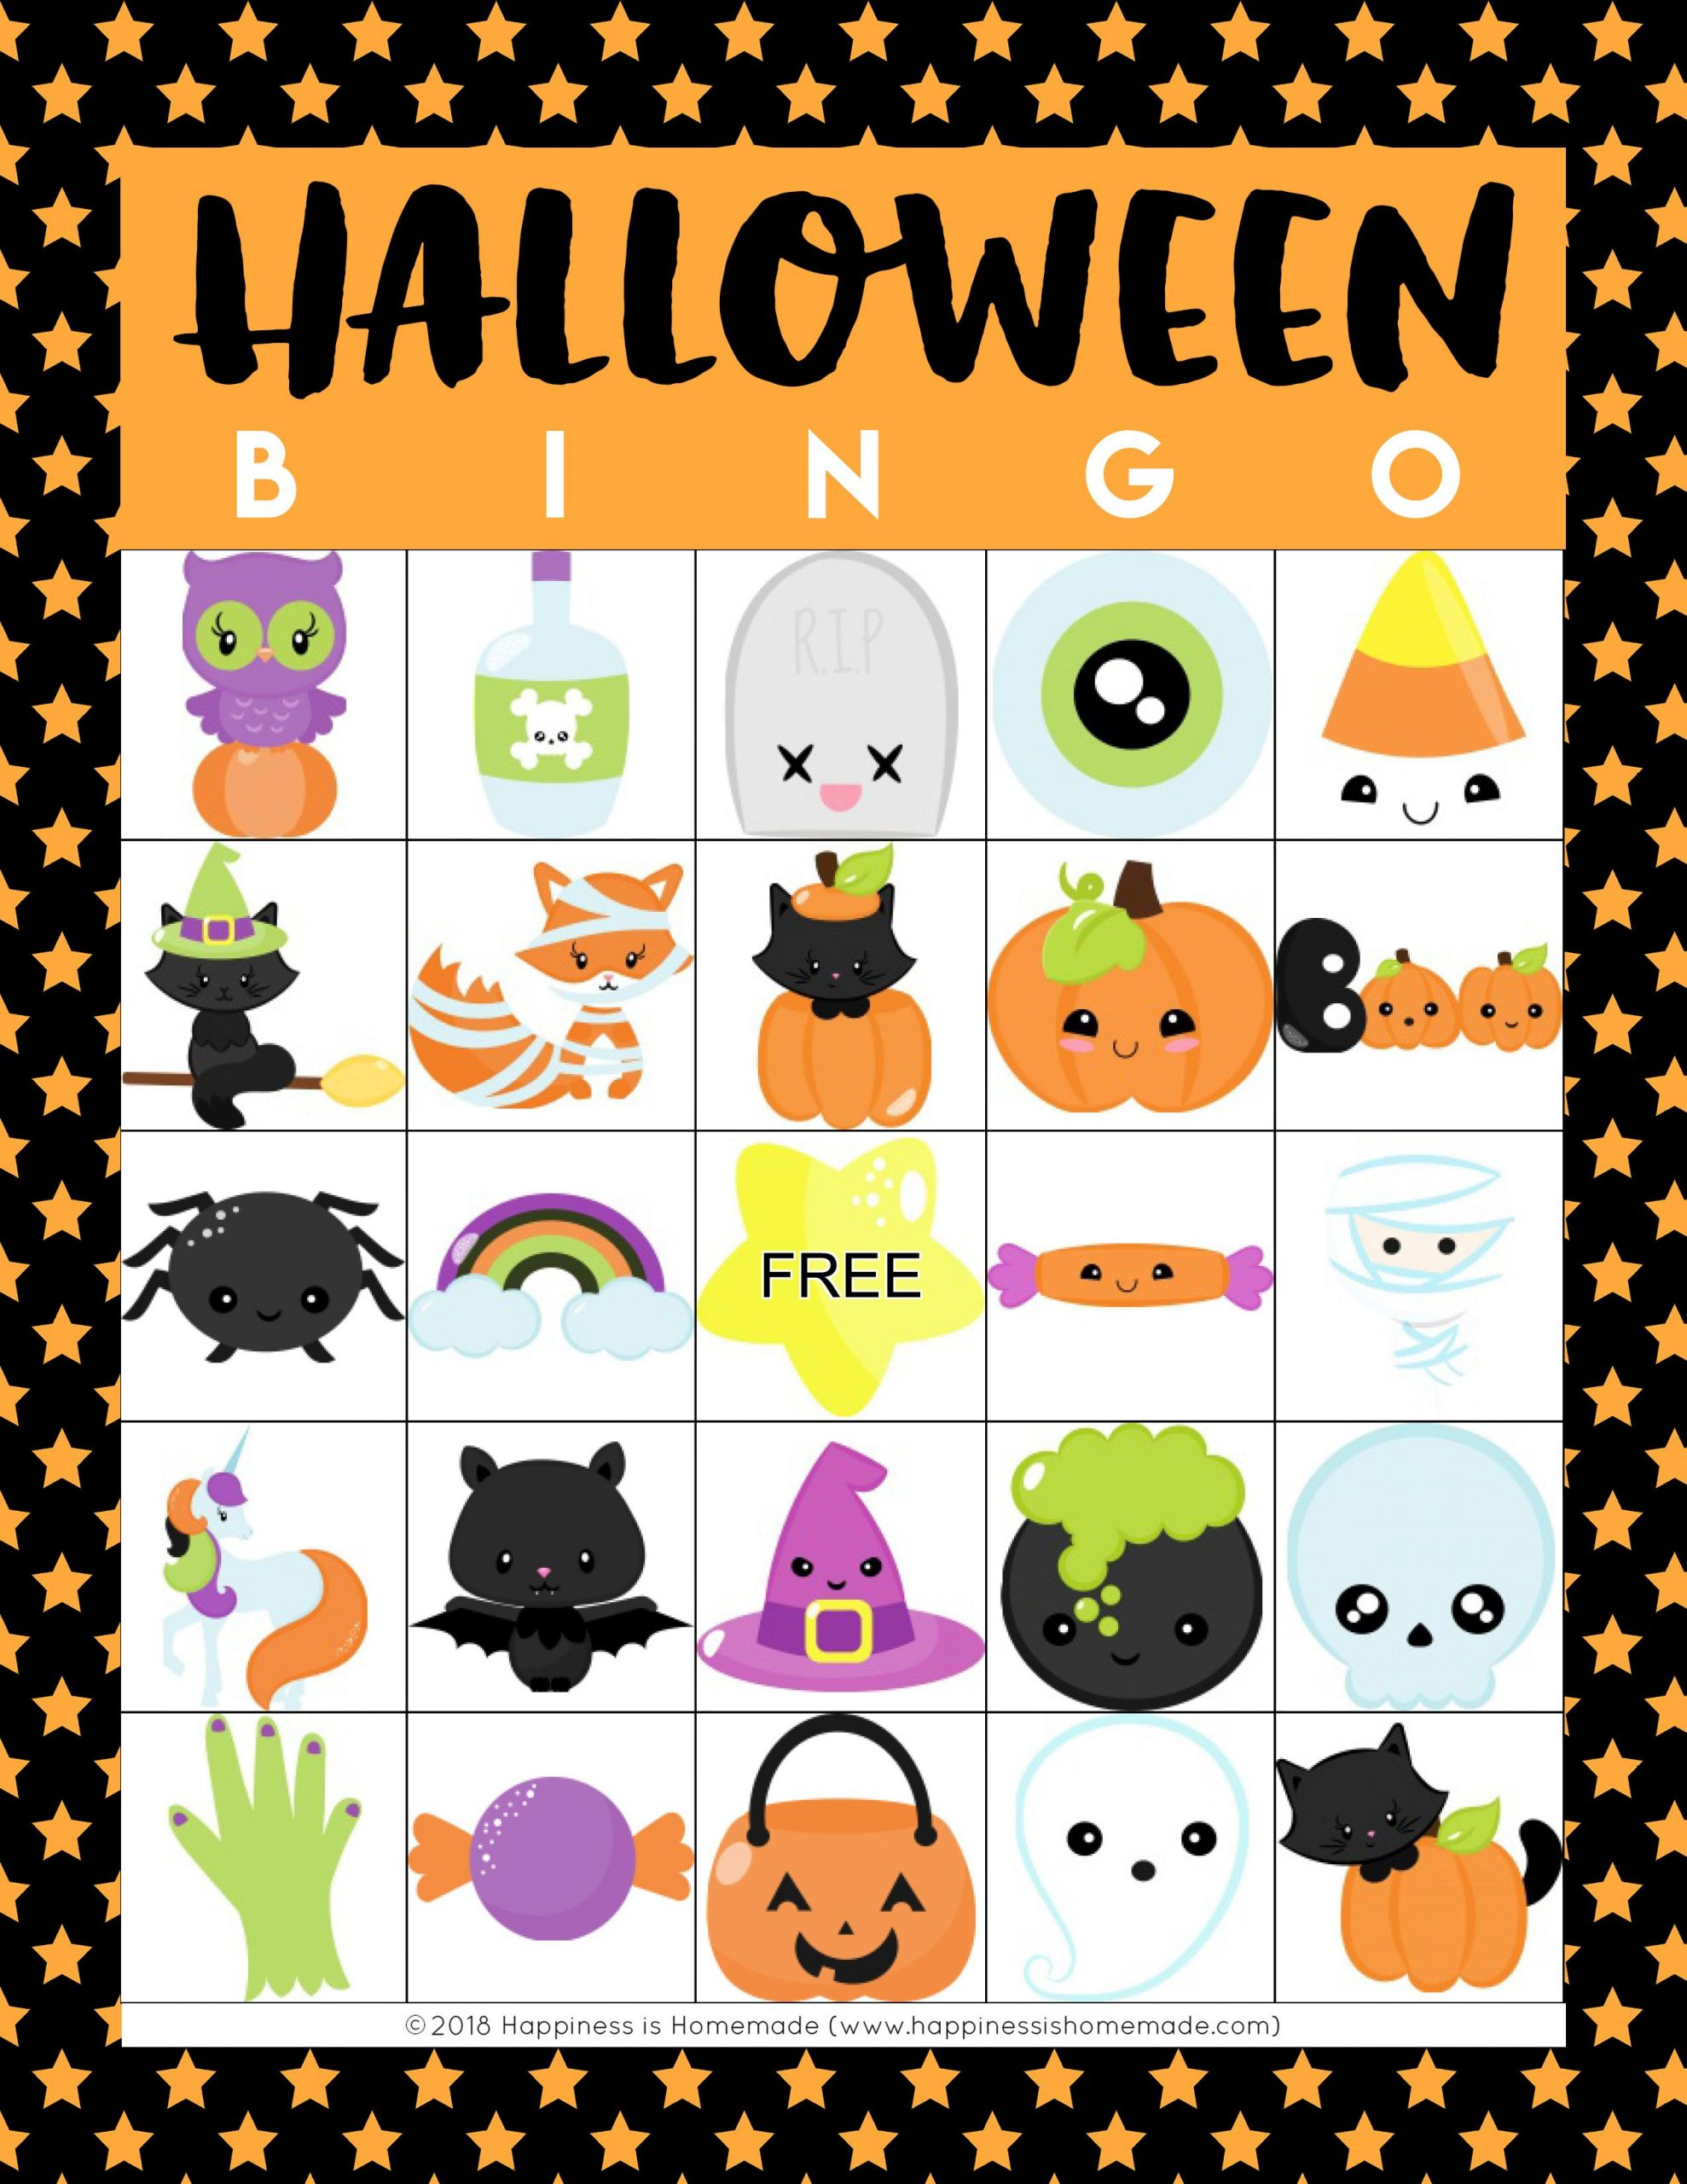 Ntable Halloween Bingo Cards - This Halloween Bingo Game Is